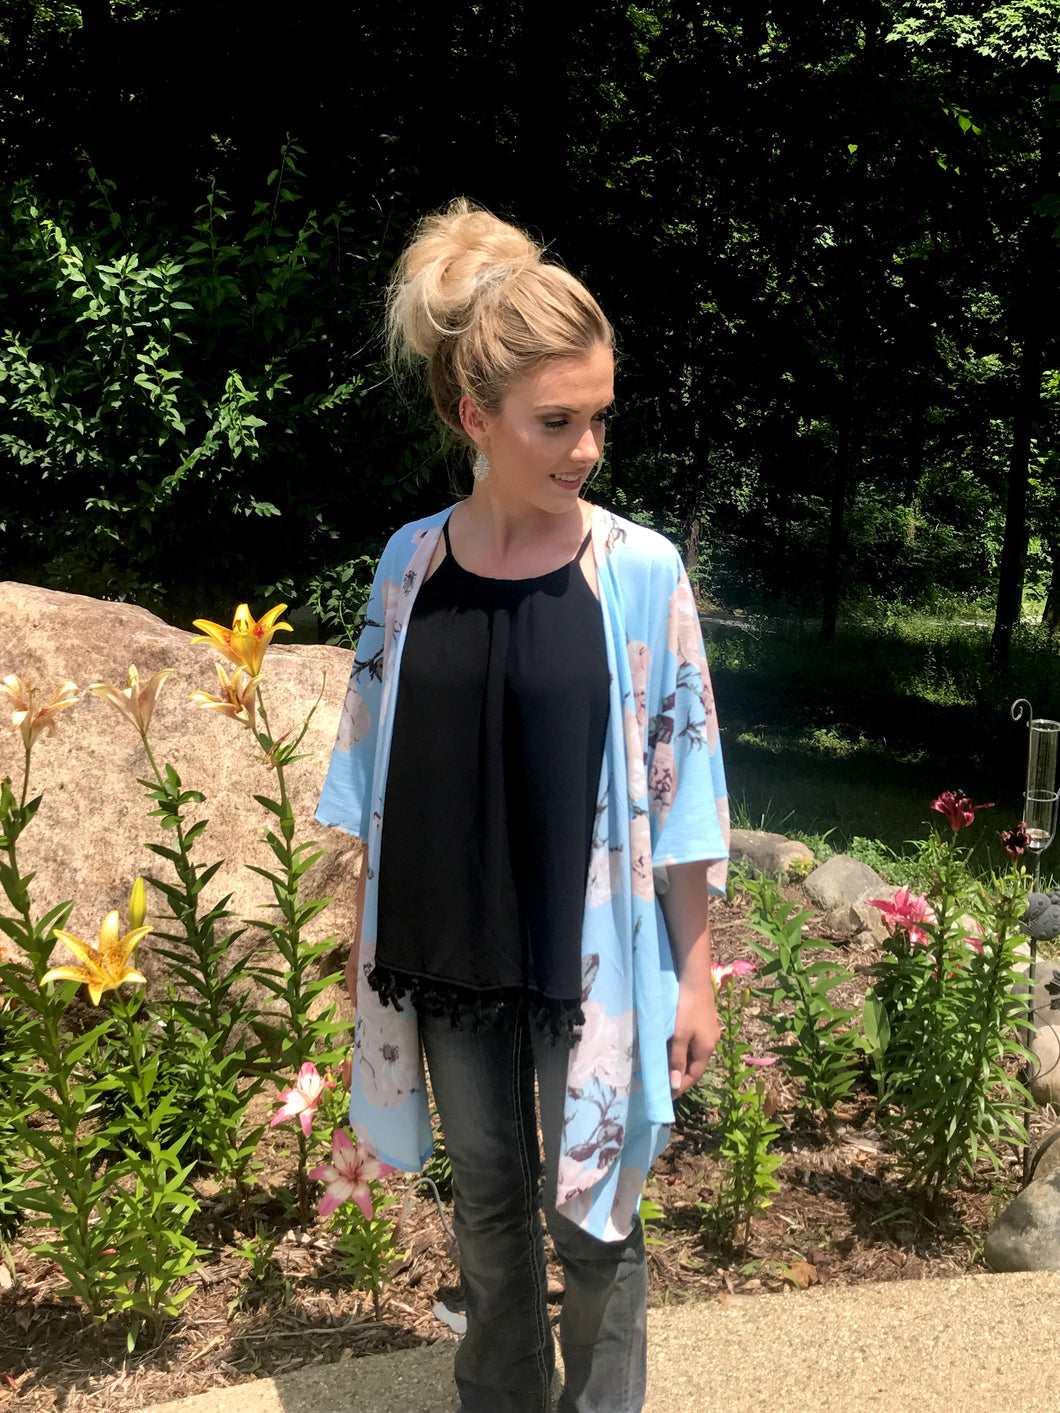 Blue Floral Kimono Top over Black Tank